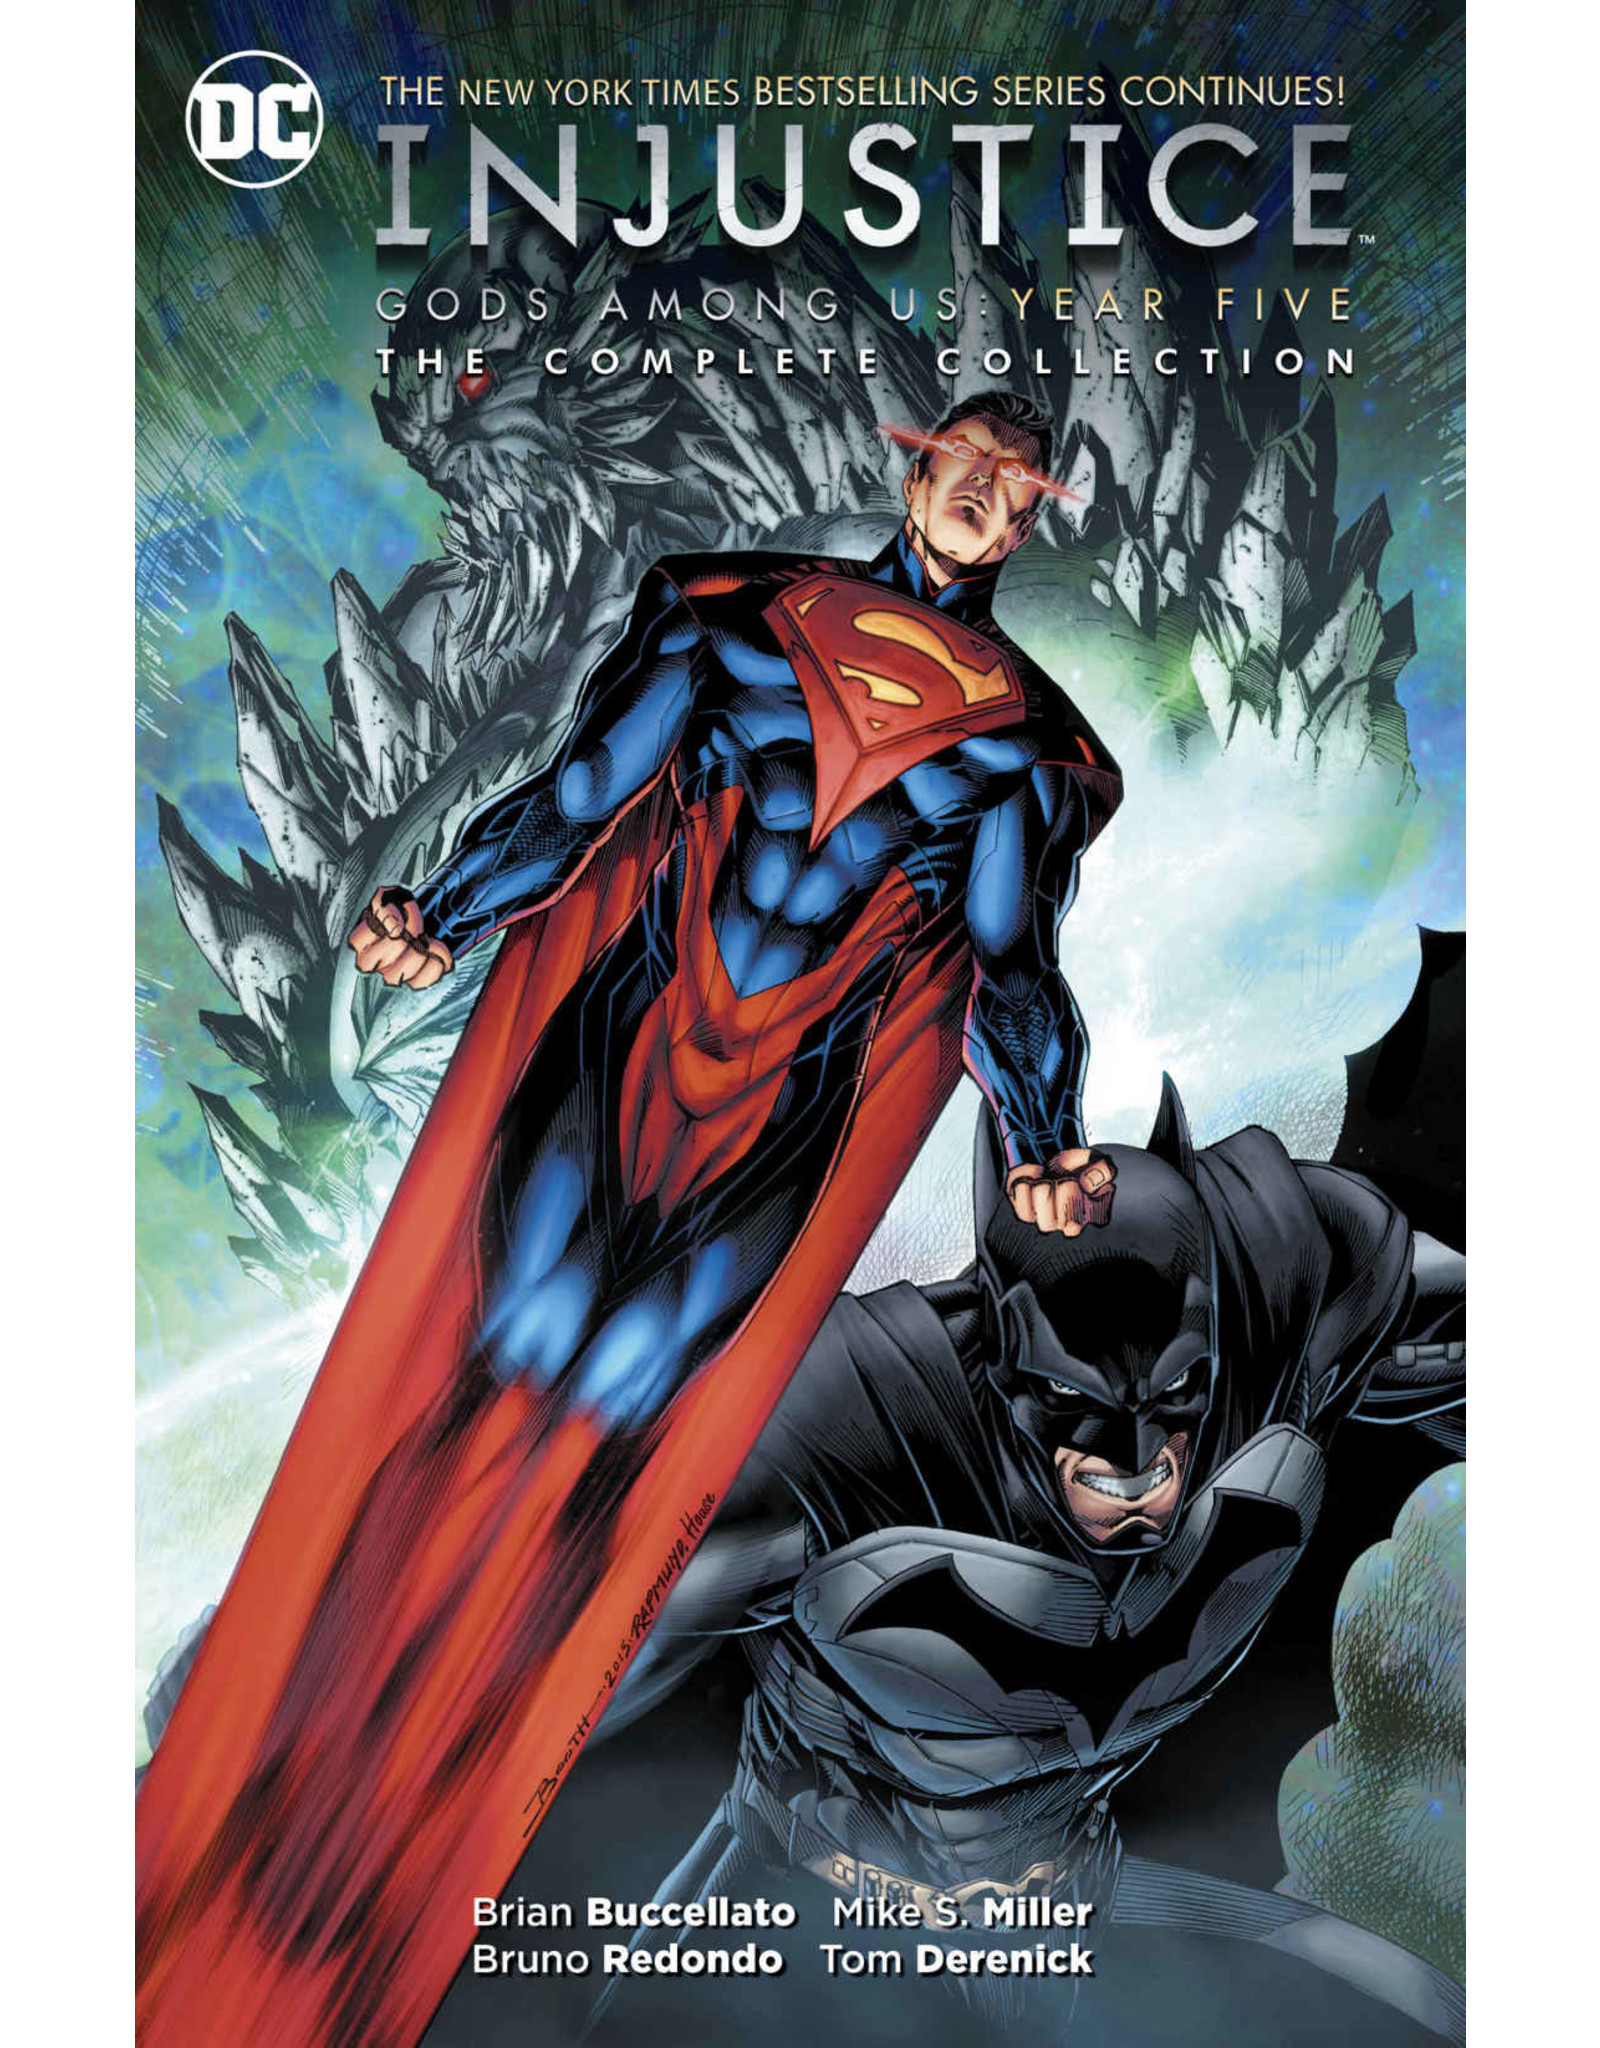 DC COMICS INJUSTICE GODS AMONG US YEAR FIVE COMPLETE COLL TP